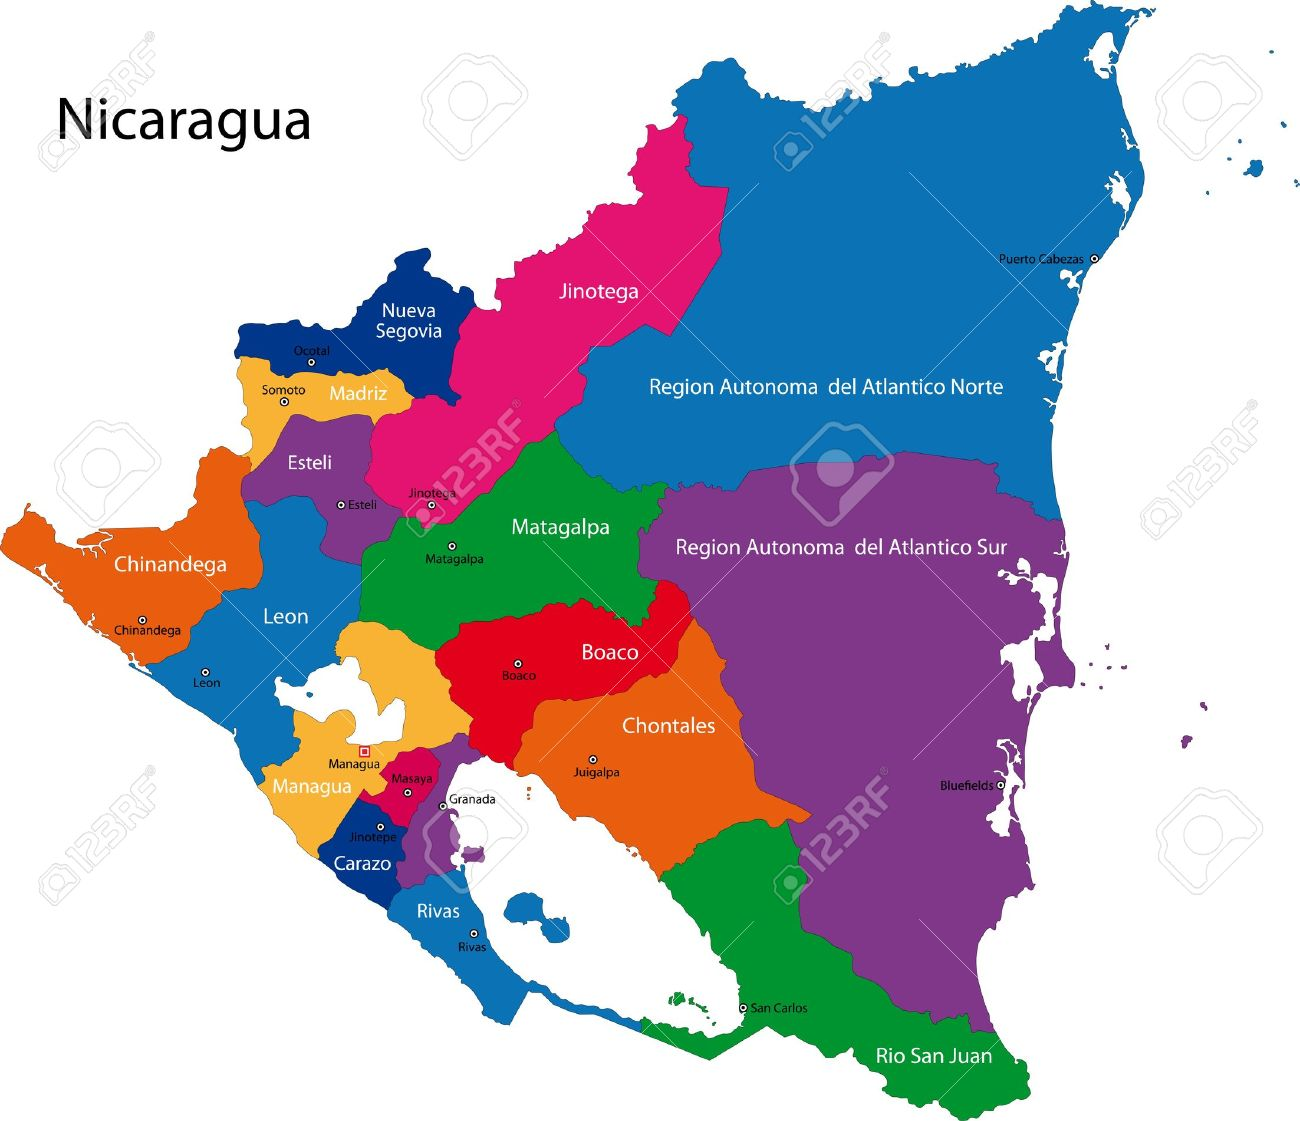 Map Of The Republic Of Nicaragua With The Departments Colored